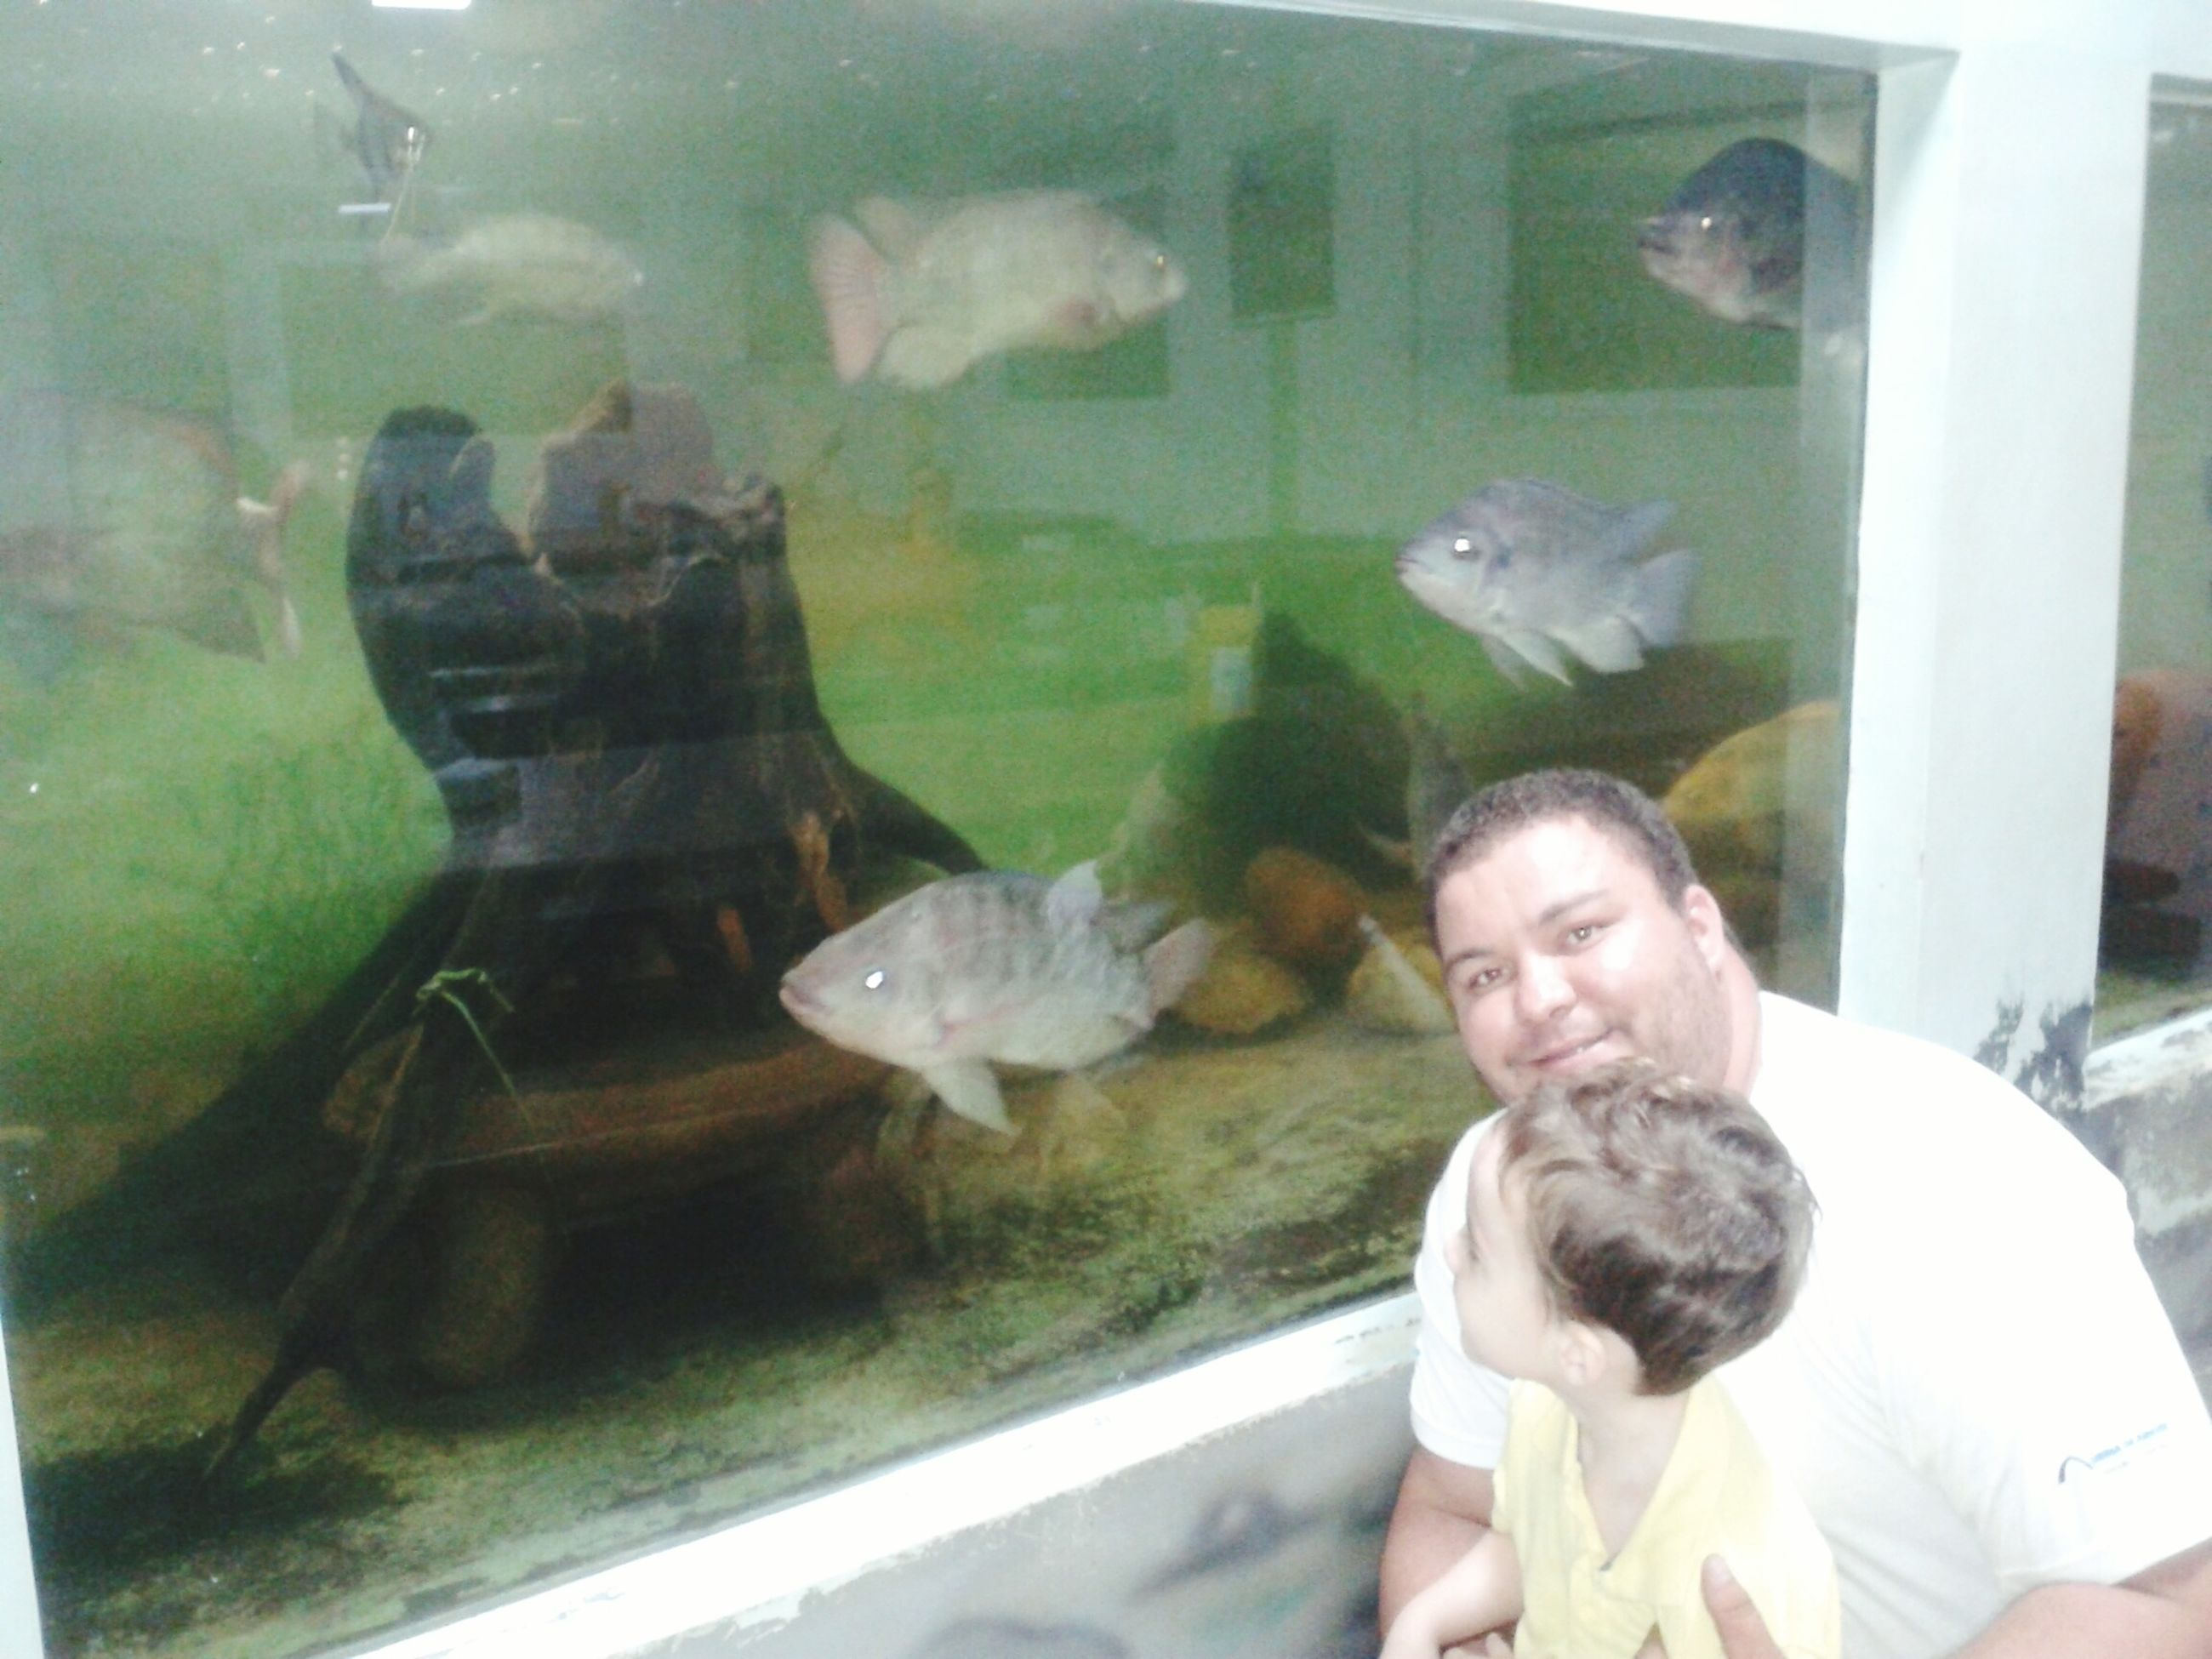 animal themes, indoors, transparent, glass - material, lifestyles, water, window, leisure activity, wildlife, animals in the wild, swimming, one animal, fish, person, people, sitting, looking, holding